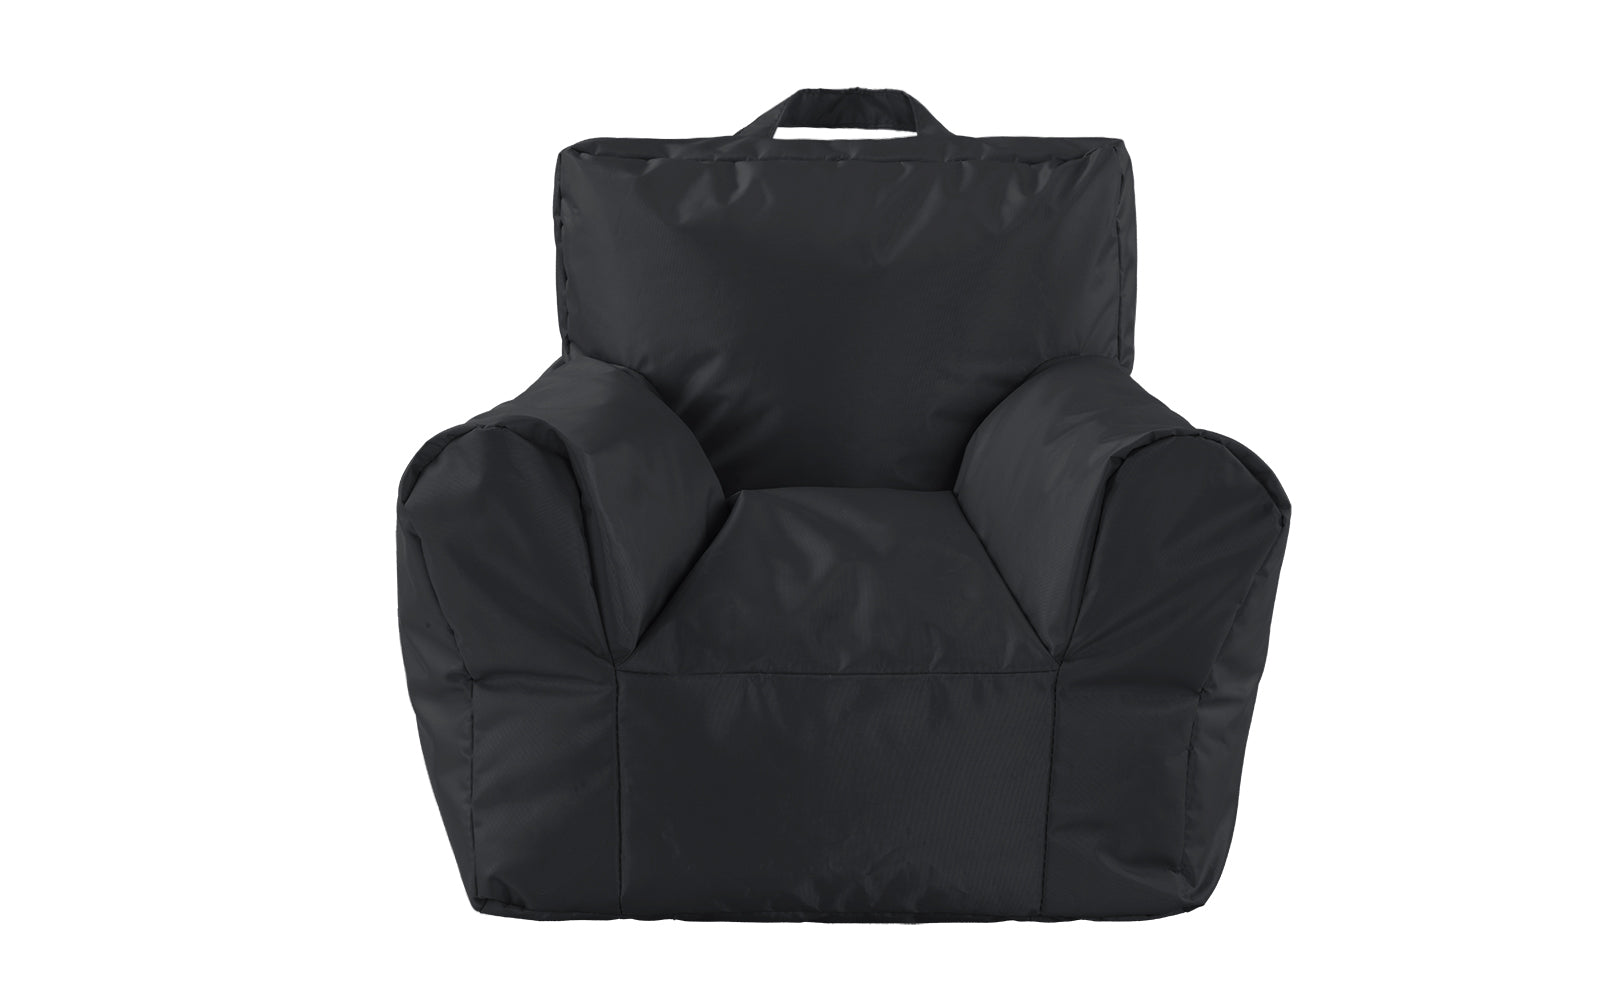 Stupendous Cheap Bean Bag Chairs For Sale Adults Kids Sofamania Beatyapartments Chair Design Images Beatyapartmentscom